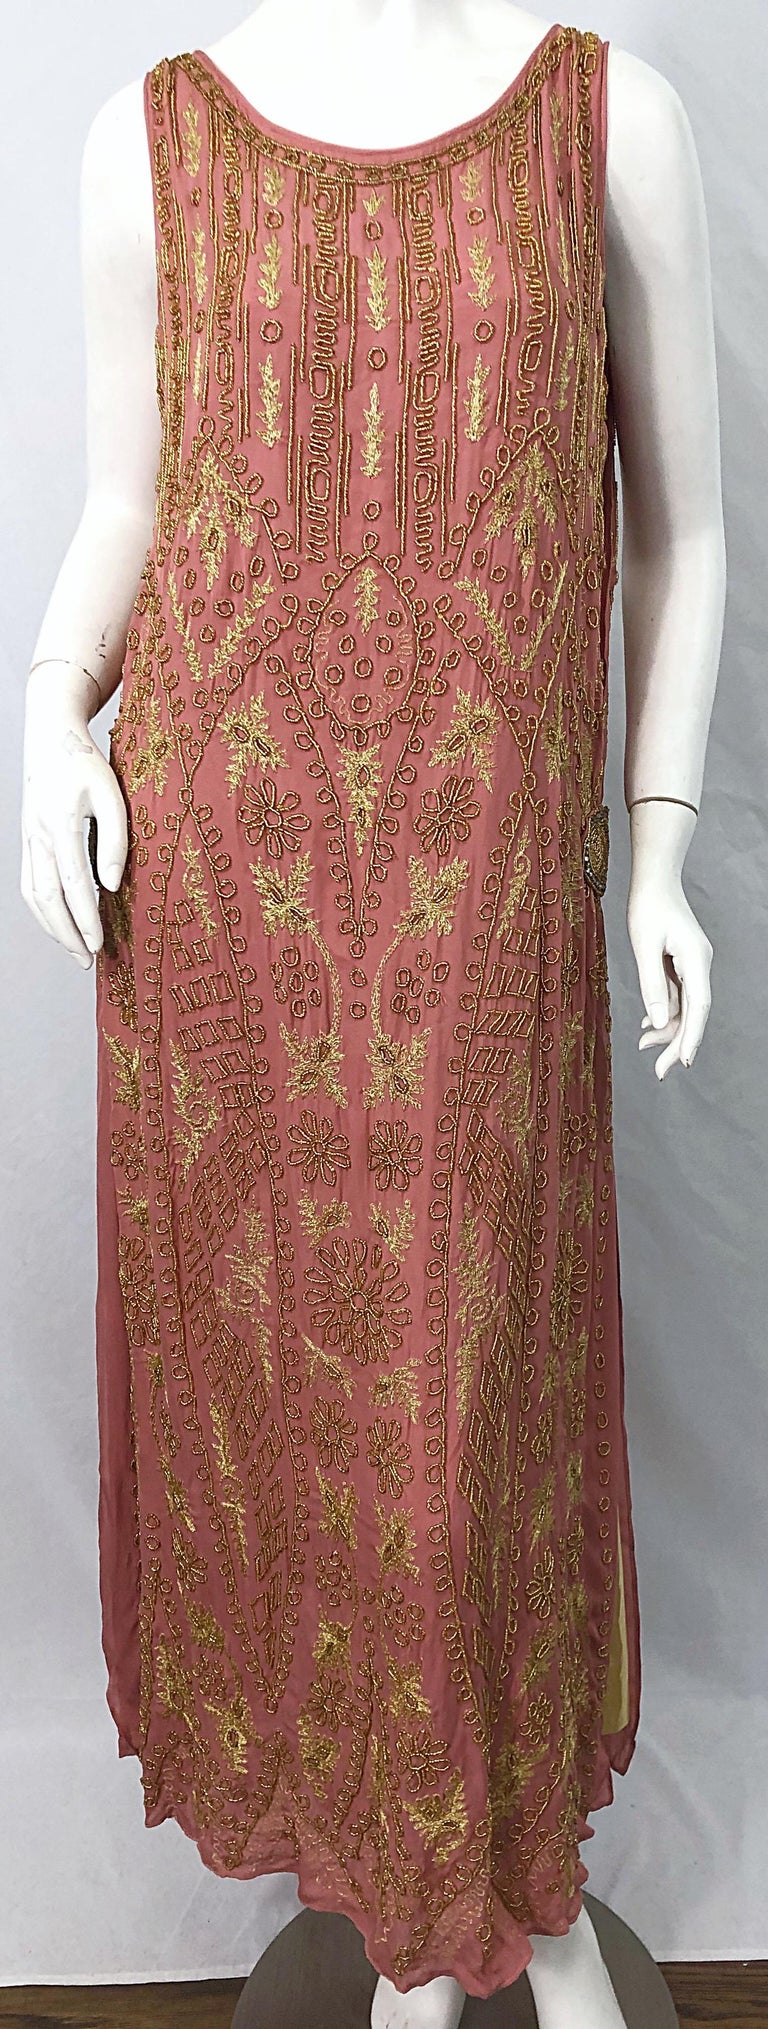 1920s French Couture Pink + Gold Beaded Gatsby Roaring 20s Vintage Flapper Dress For Sale 11